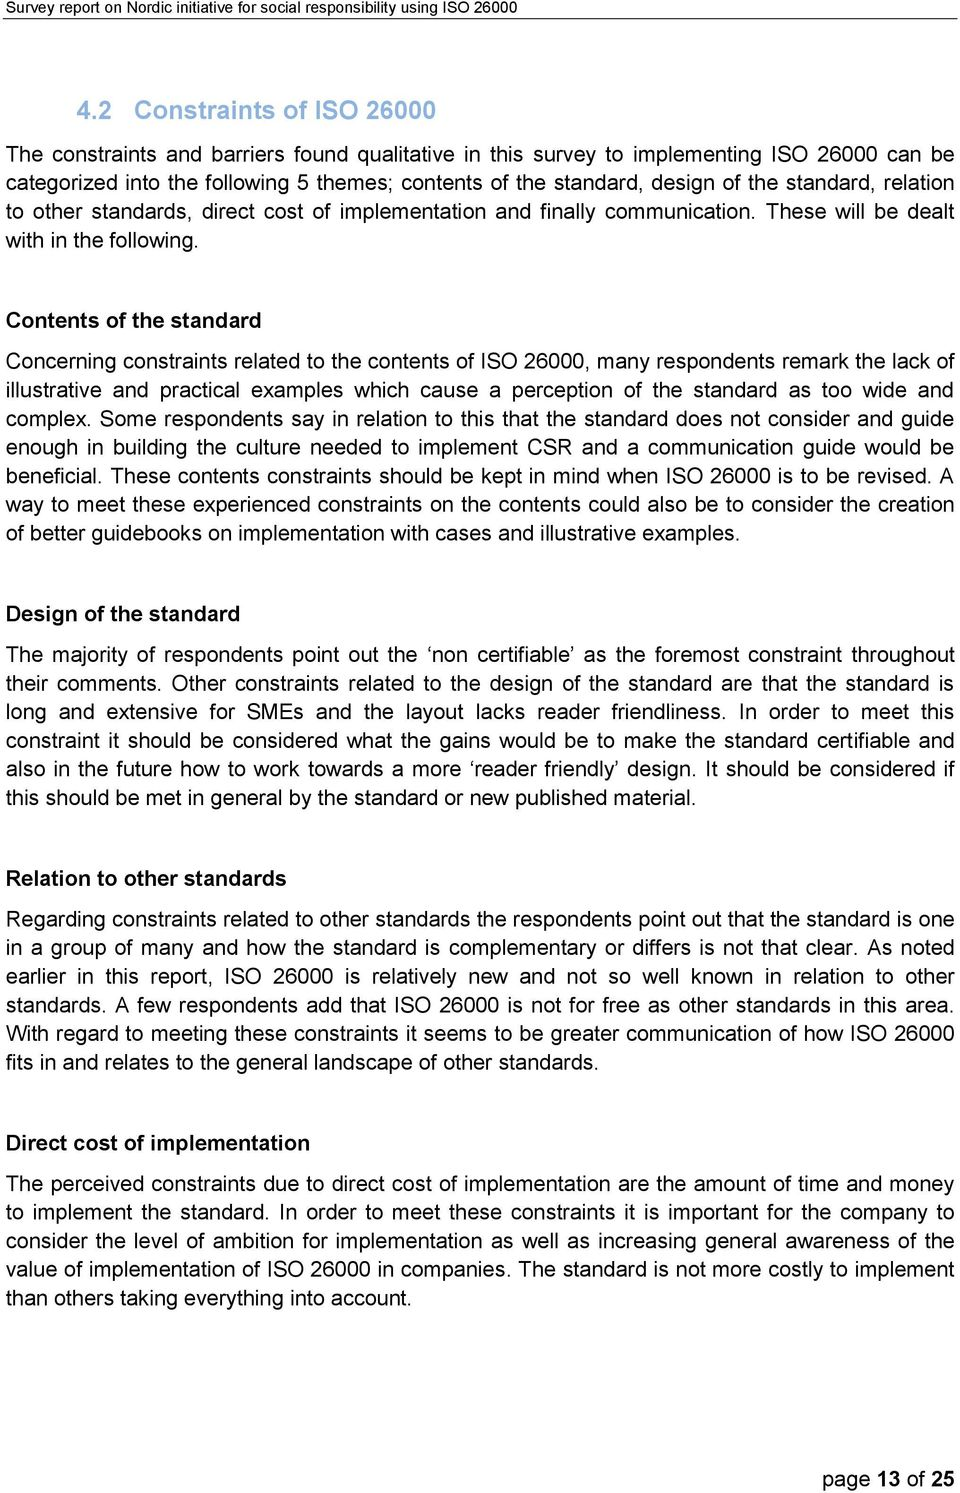 Contents of the standard Concerning constraints related to the contents of ISO 26000, many respondents remark the lack of illustrative and practical examples which cause a perception of the standard